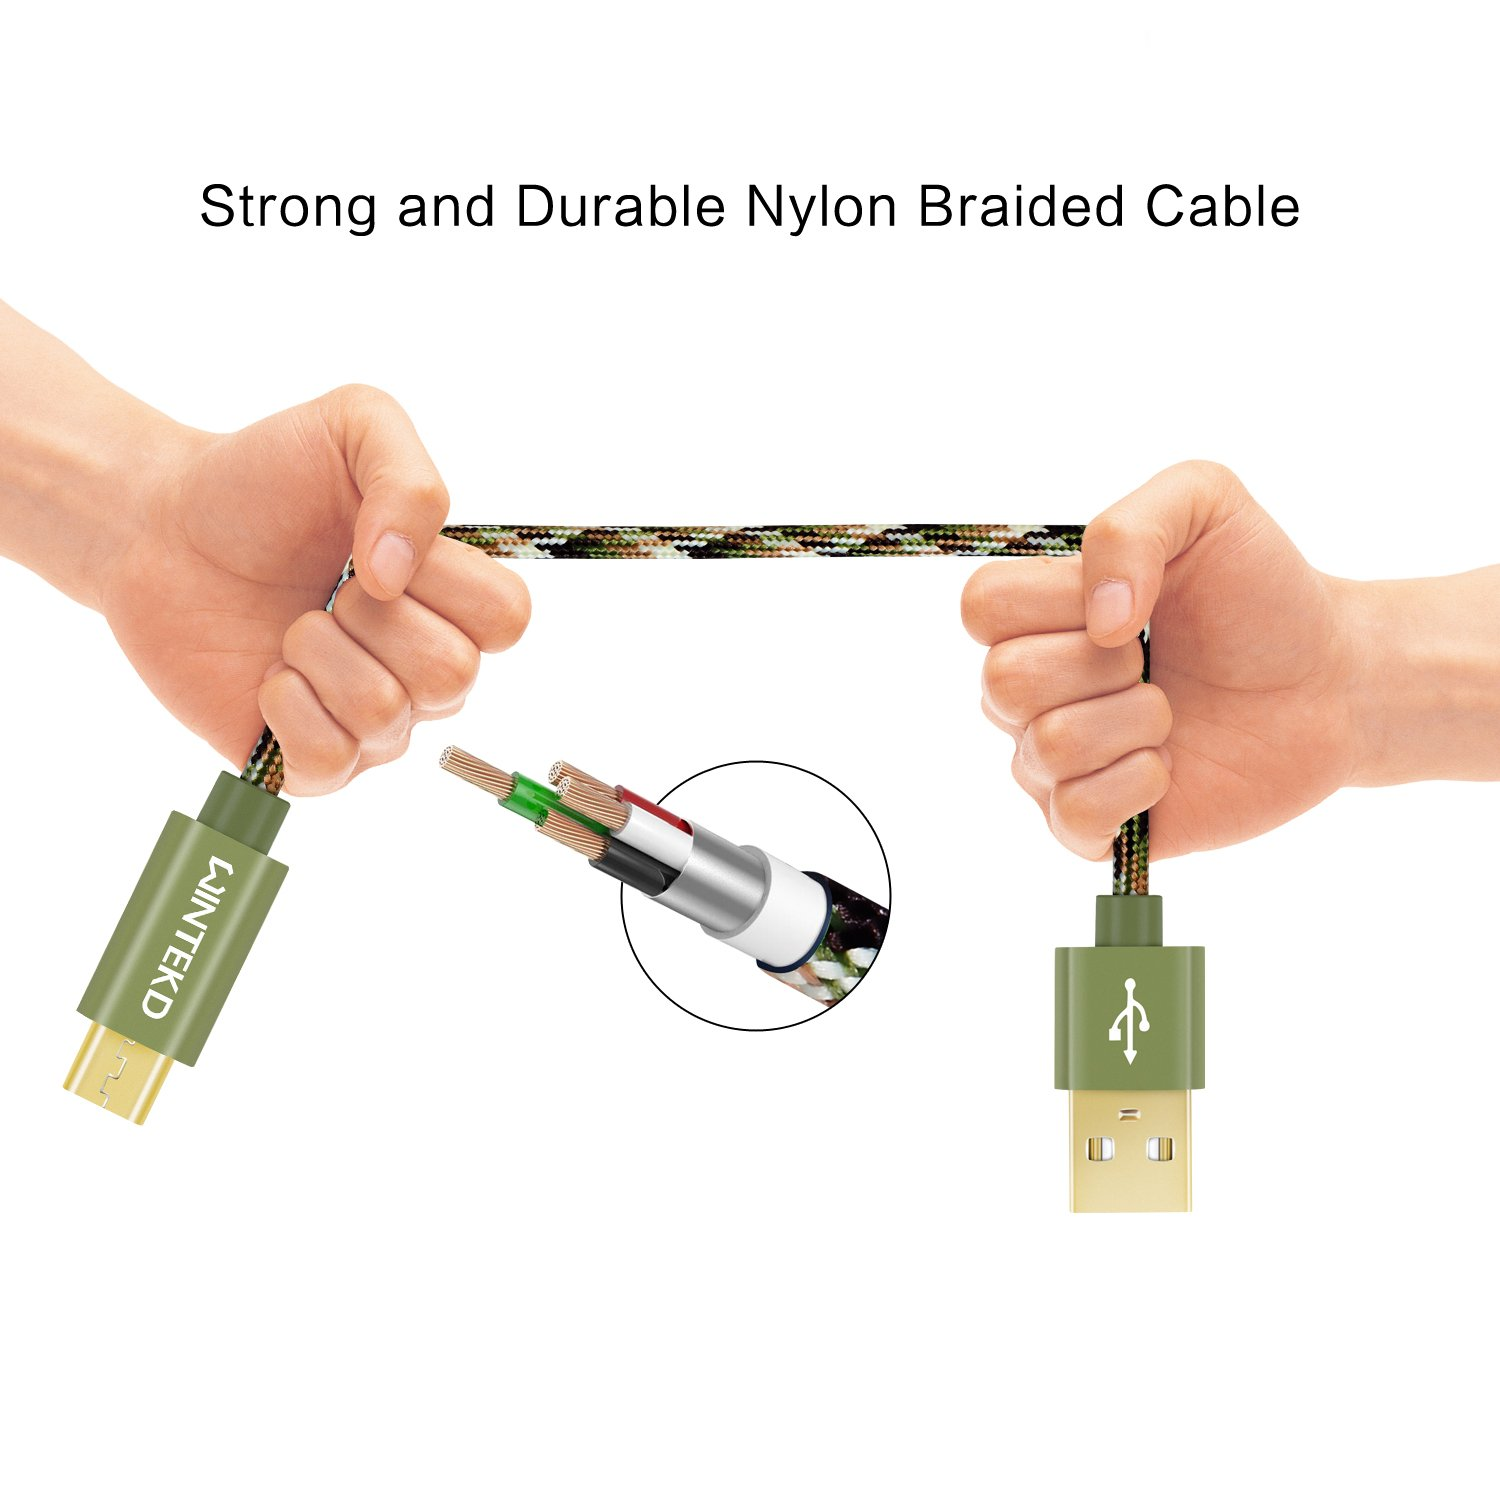 Micro USB Android Cable, WINTEKD [2-Pack 6.6ft] Premium Nylon Braided High Speed USB to Micro USB Charging Cord Android Fast Charger for Samsung Galaxy S7/S6/S5/Edge,Note 5/4/3,HTC,LG - (Camo Green)